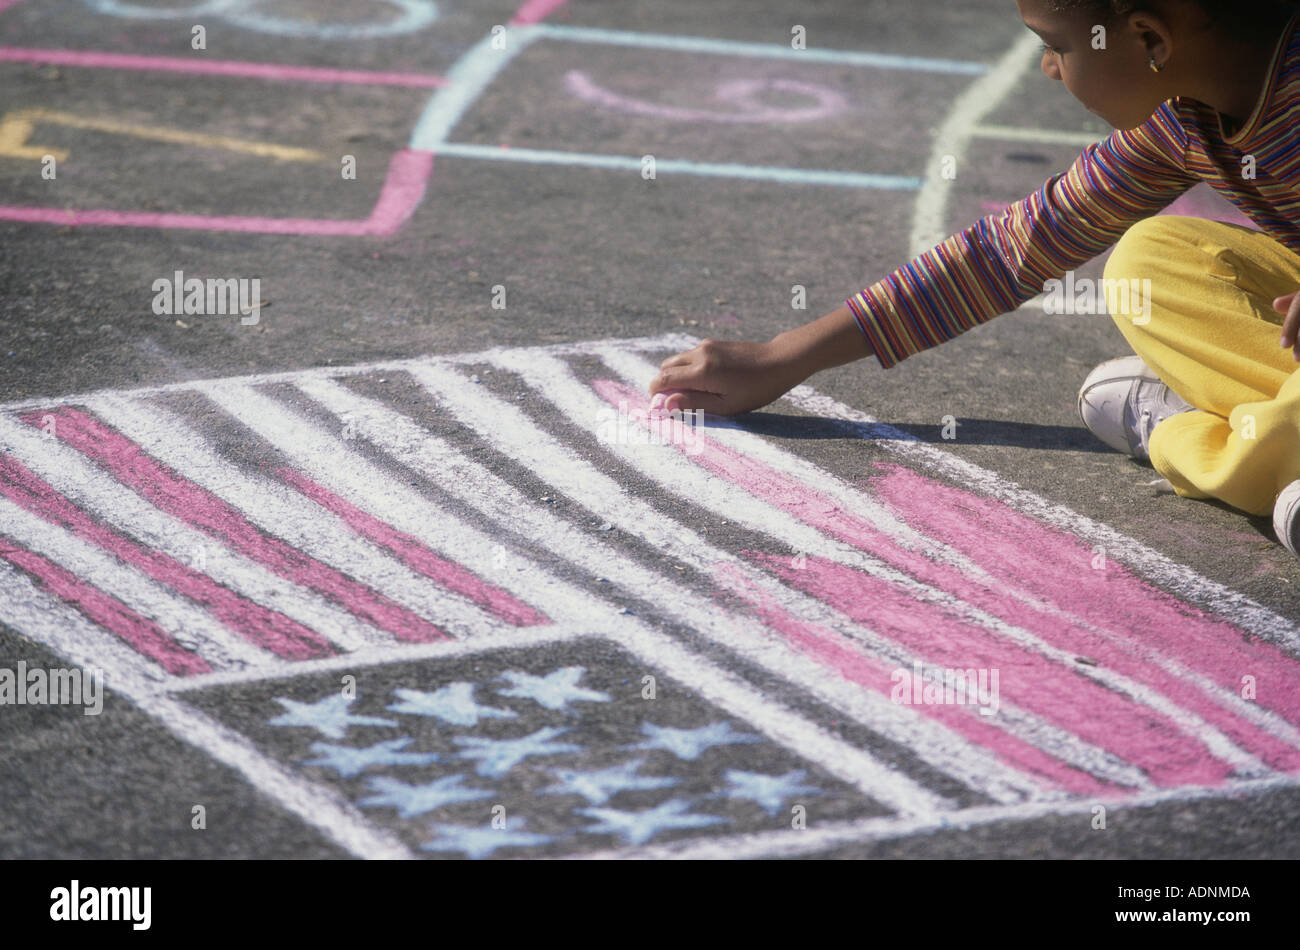 Girl drawing the American flag on the ground with chalk - Stock Image